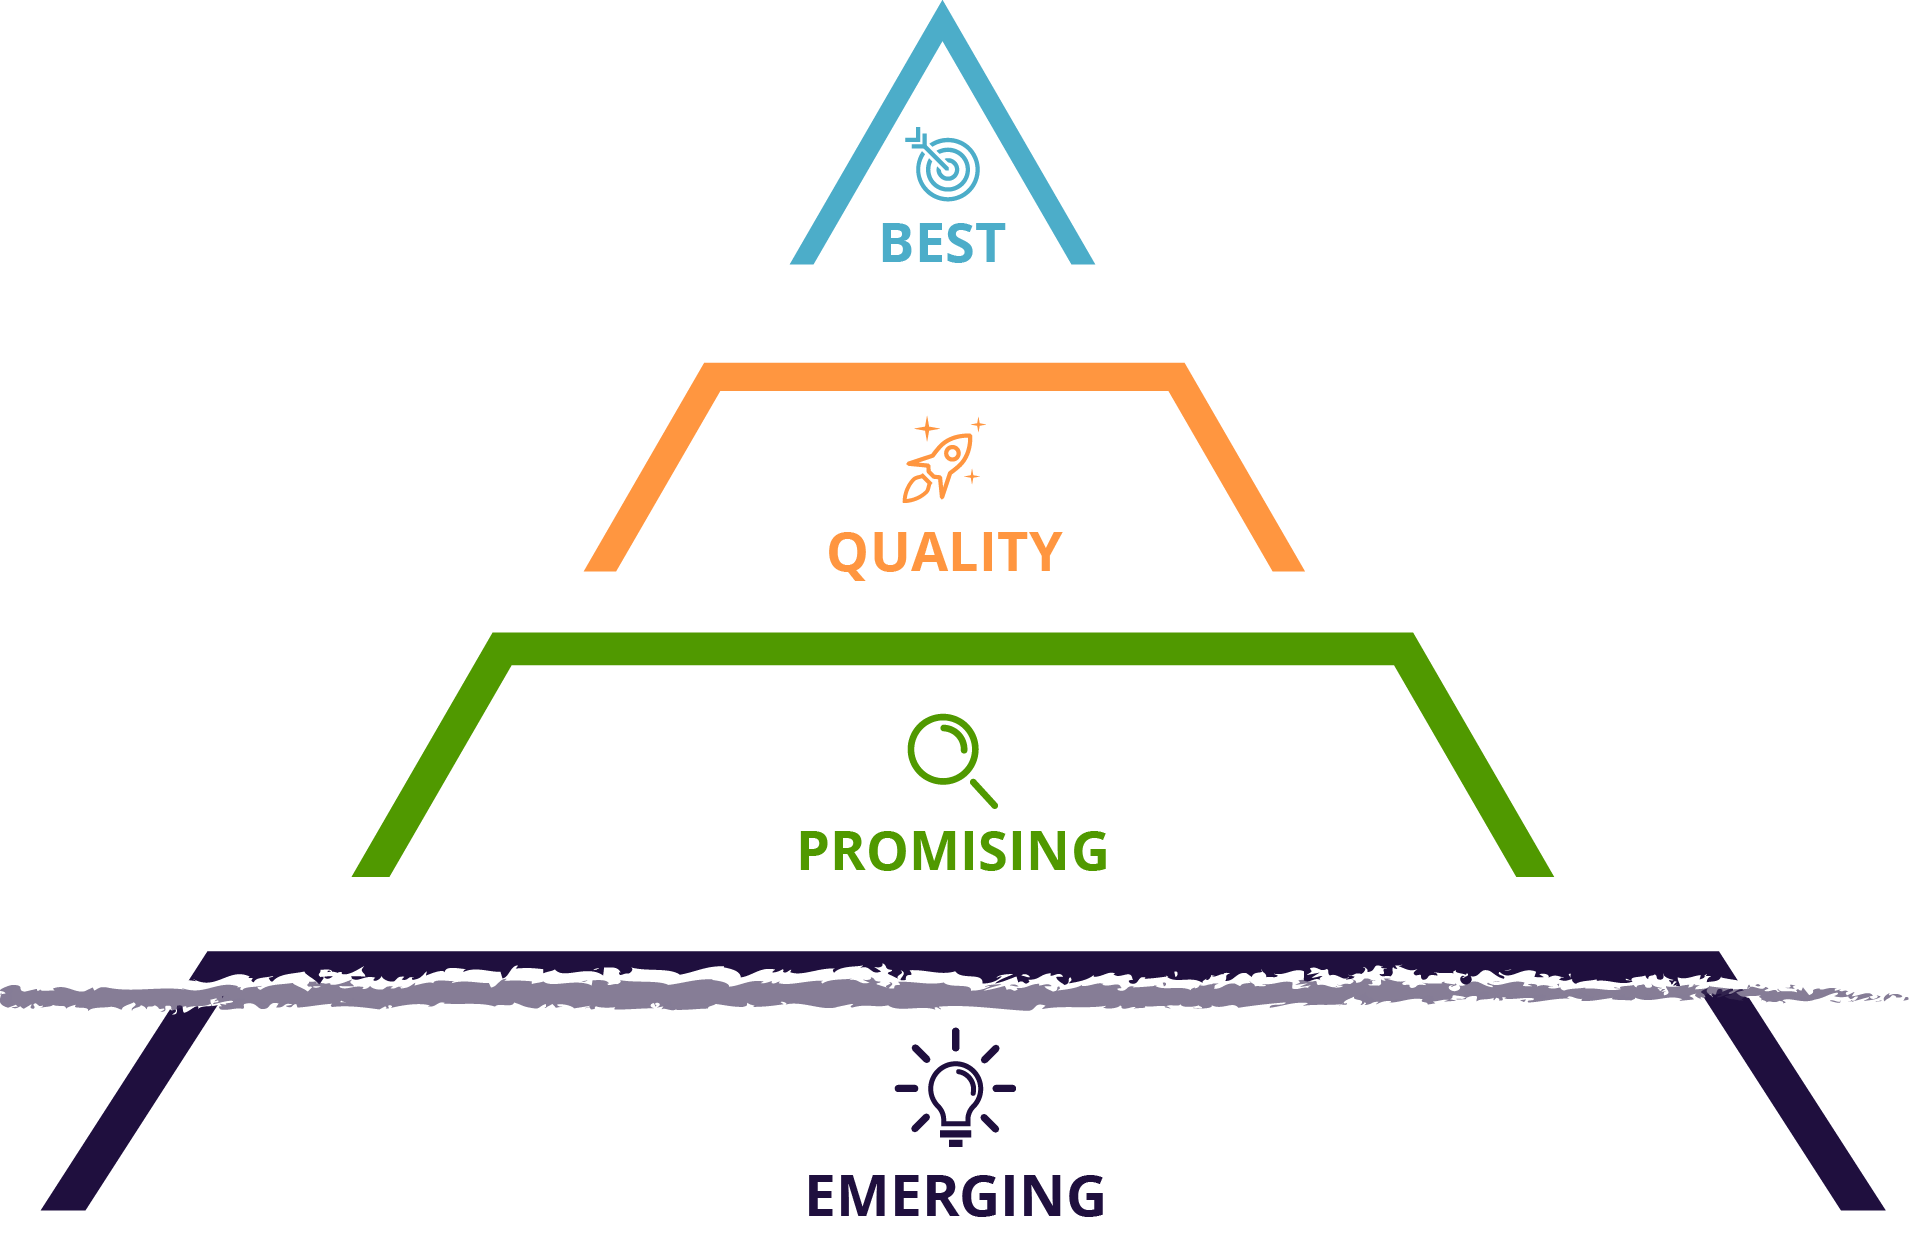 pyramid from emerging to best